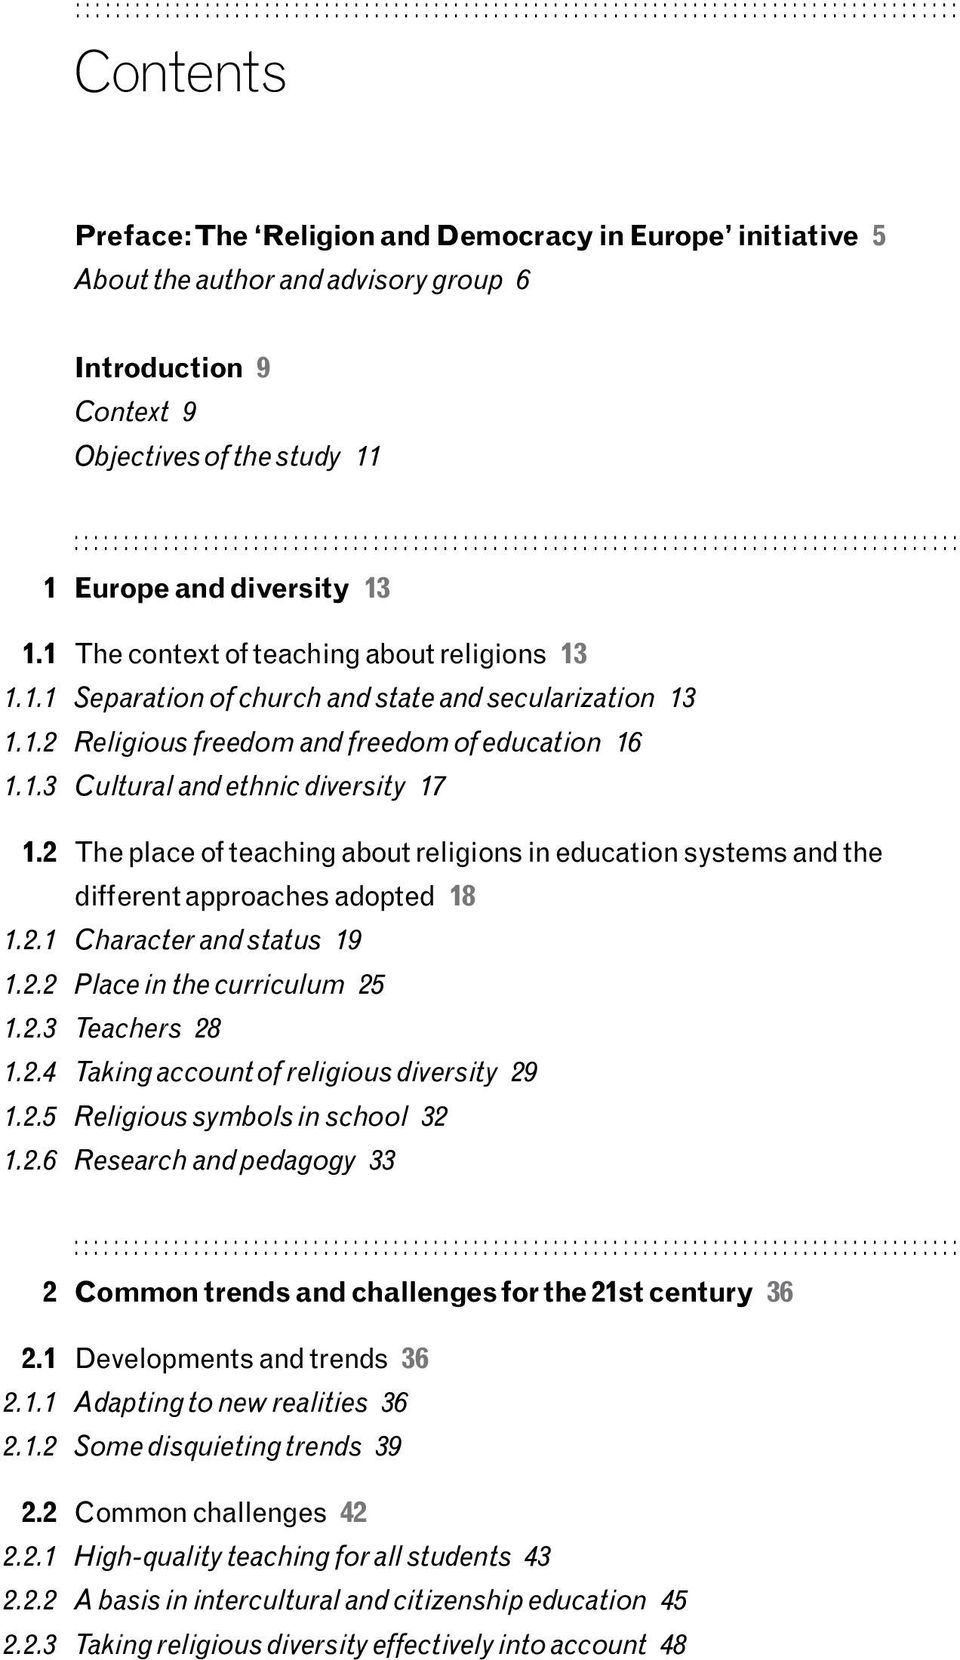 1 The context of teaching about religions 13 1.1.1 Separation of church and state and secularization 13 1.1.2 Religious freedom and freedom of education 16 1.1.3 Cultural and ethnic diversity 17 1.